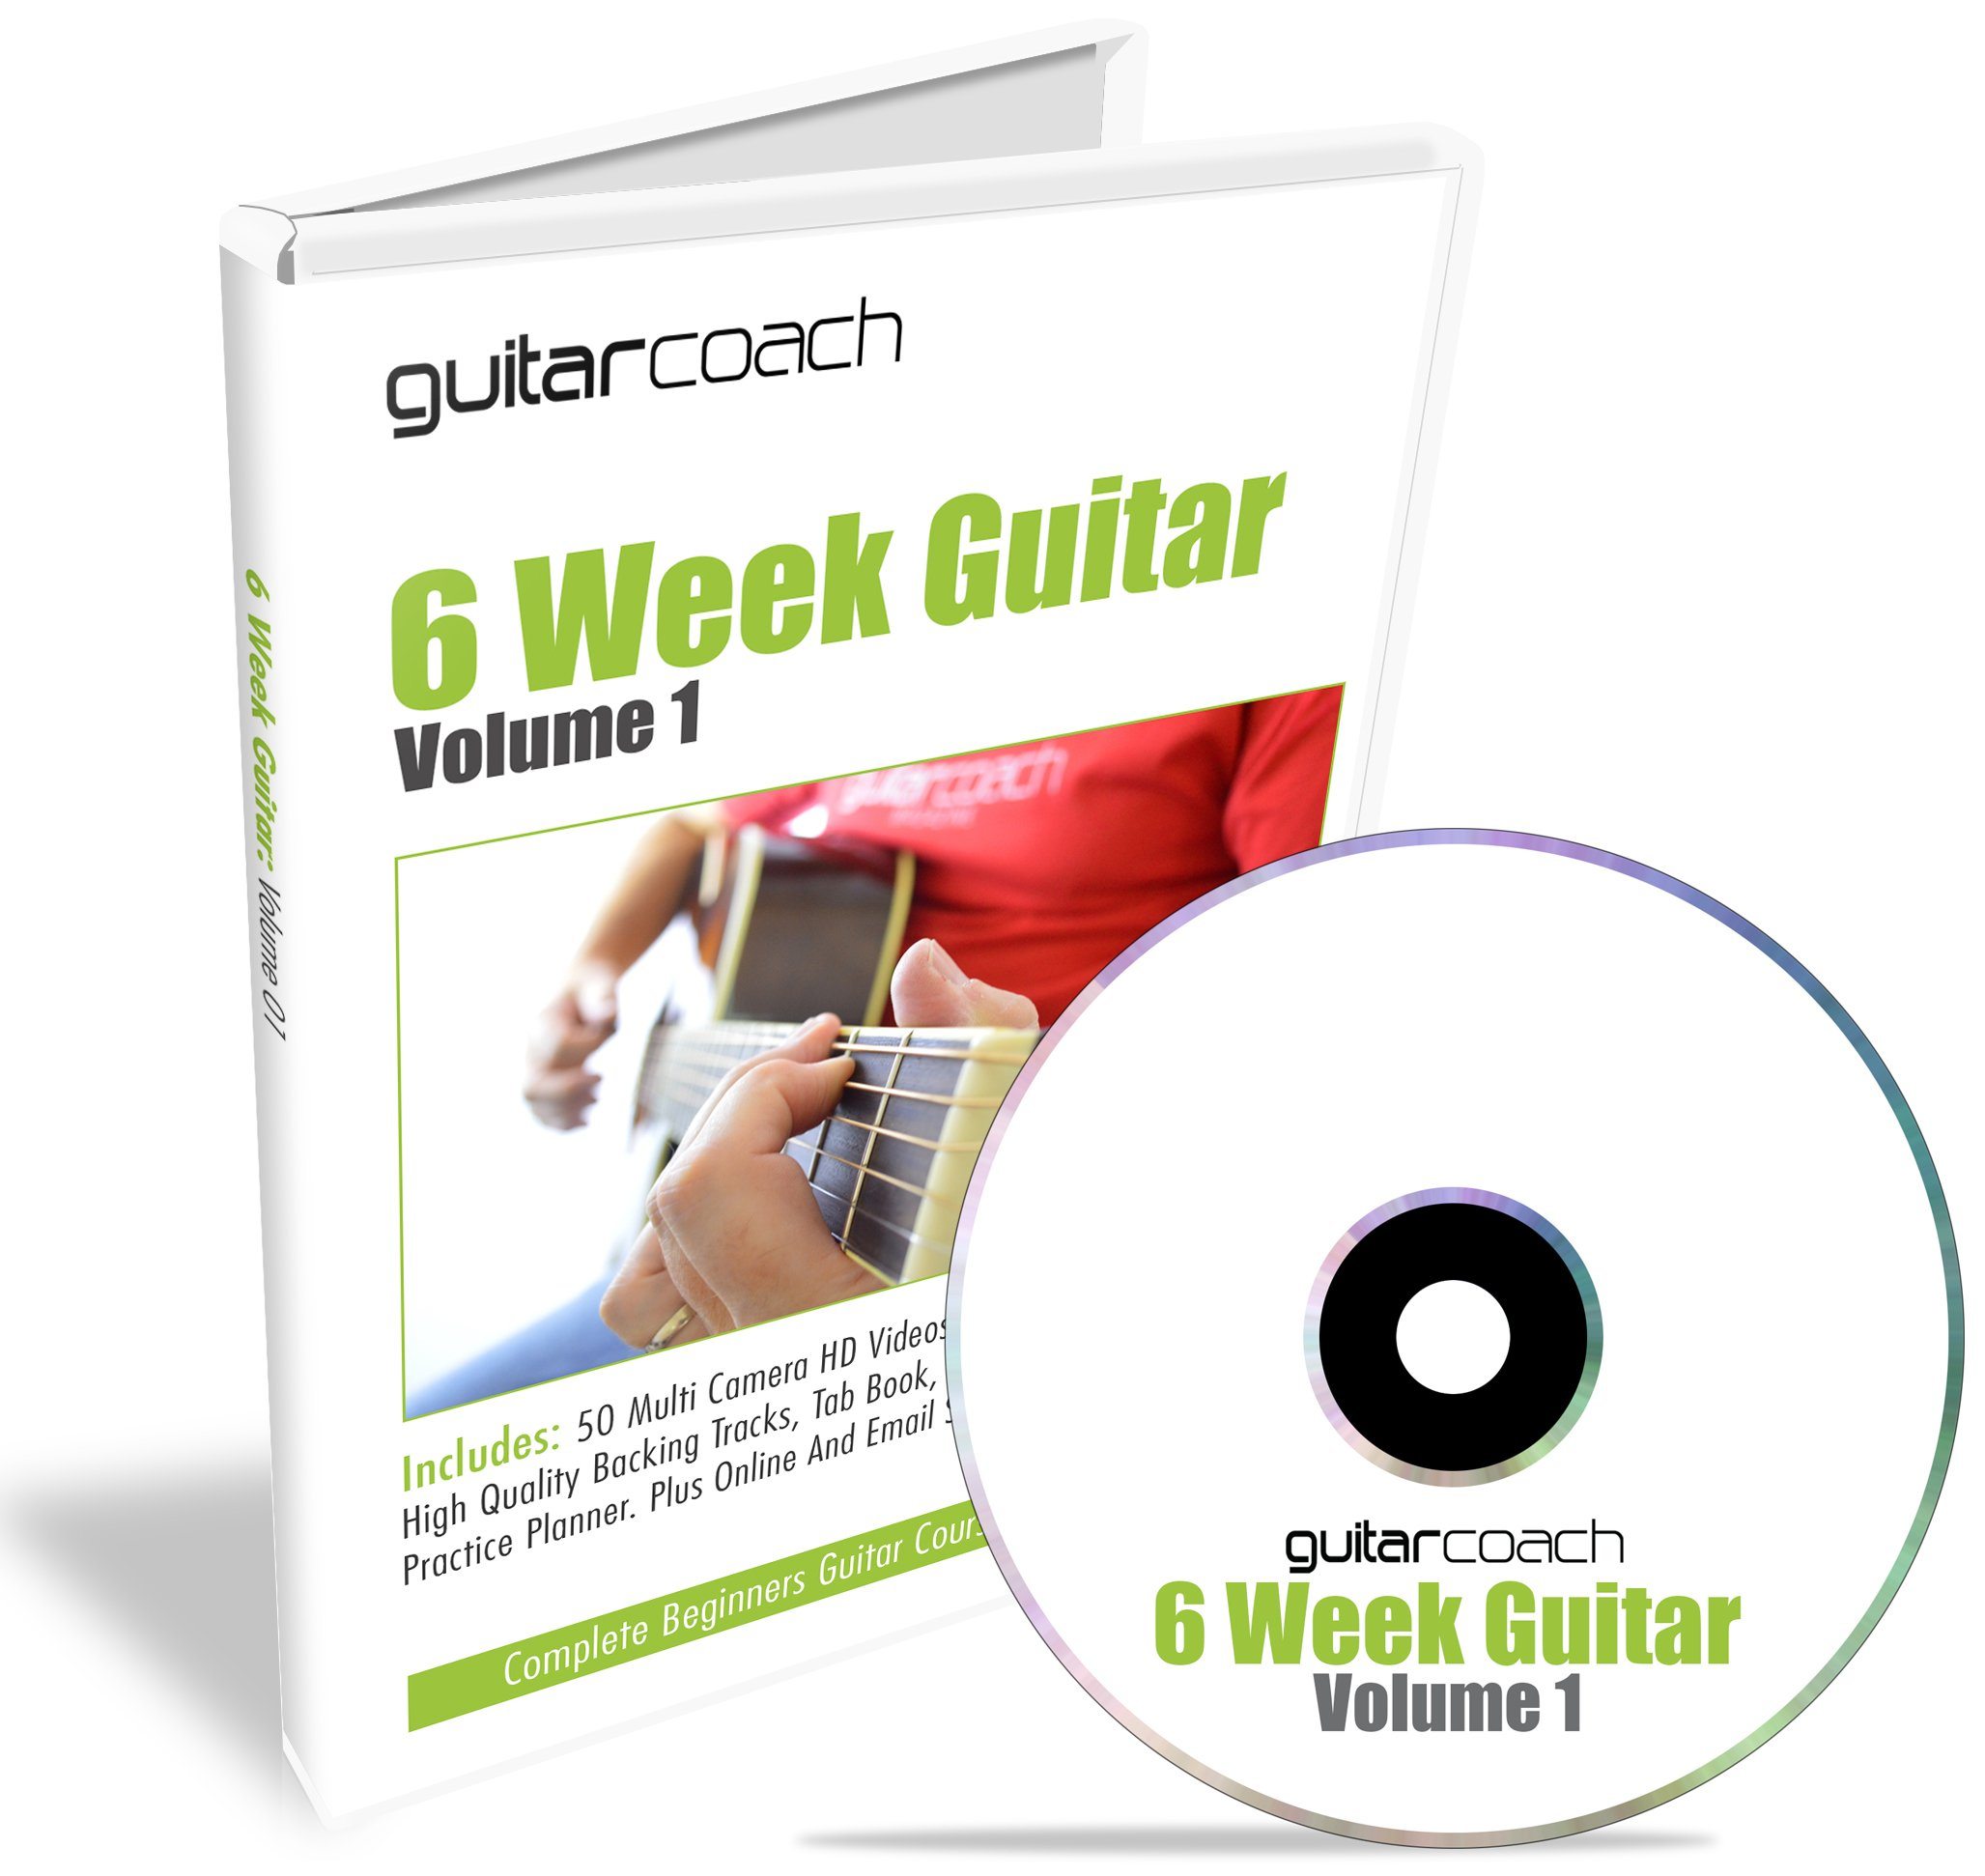 GUITAR COACH Learn To Play Guitar: 50 HD Videos (mp4), Backing Tracks (mp3), 100 Page Course Guide, Tab Book, Chord Chart, Practice Planner (pdf's)